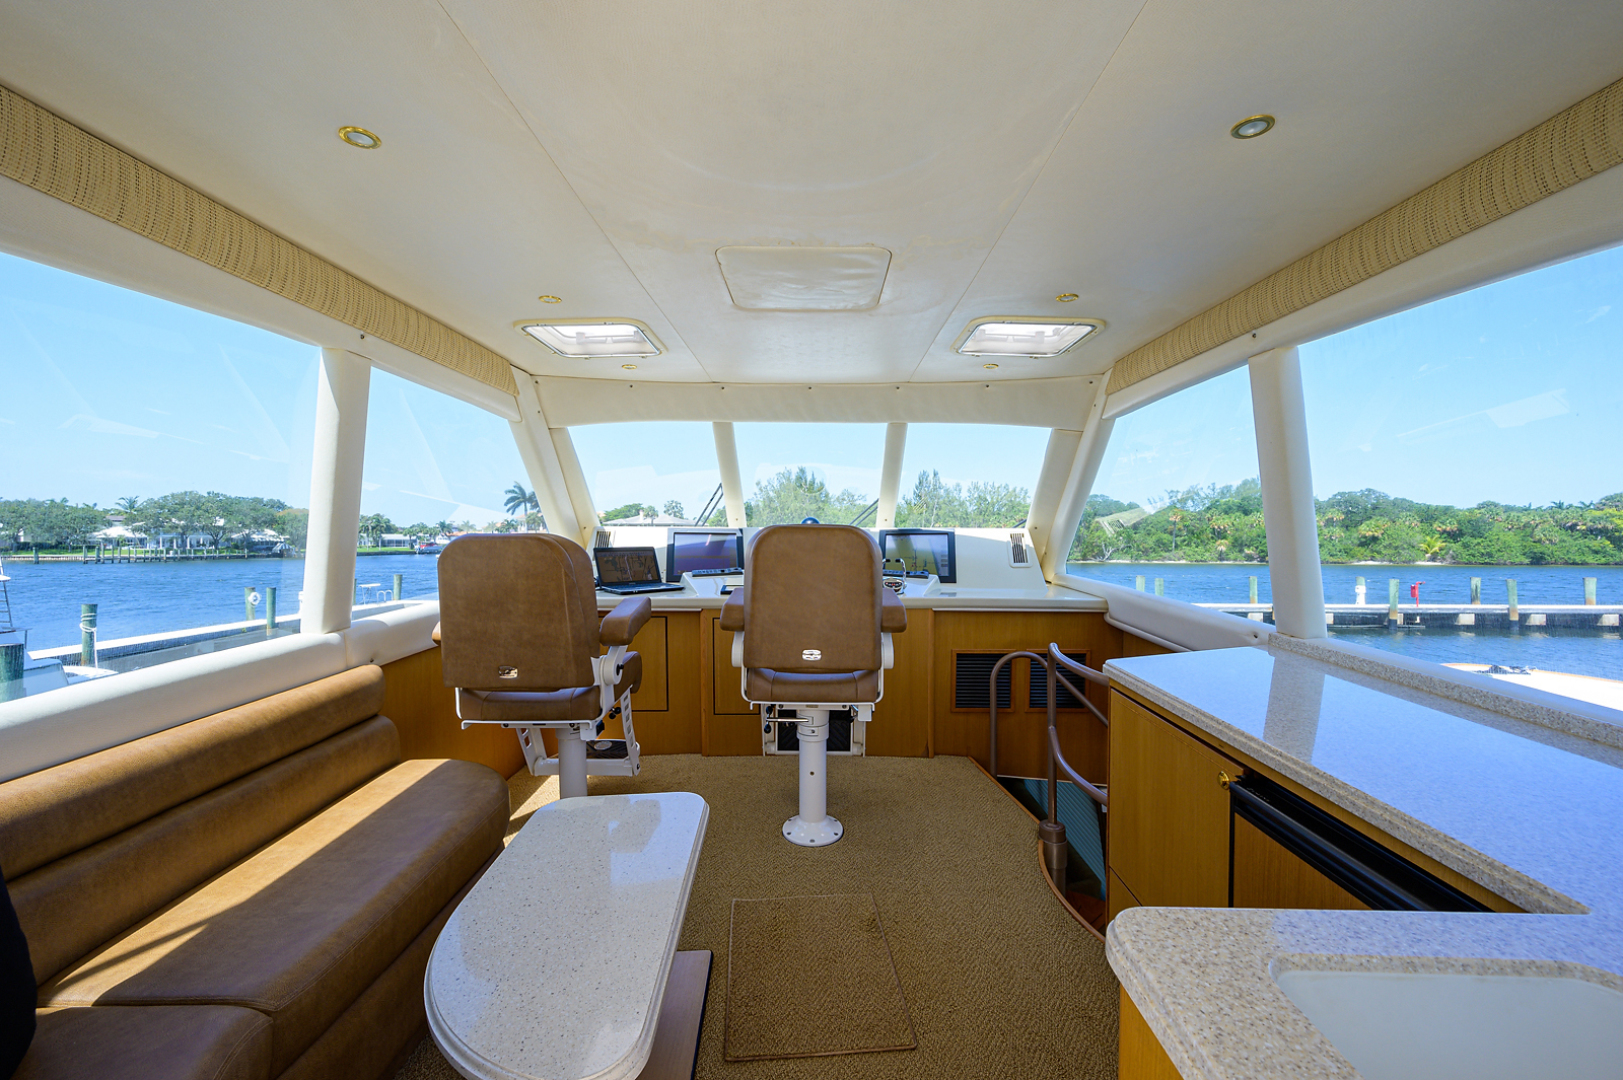 Ocean Yachts-Odyssey 2005-MISS JAN Palm Beach Gardens-Florida-United States-Enclosed Flybridge-1386984 | Thumbnail